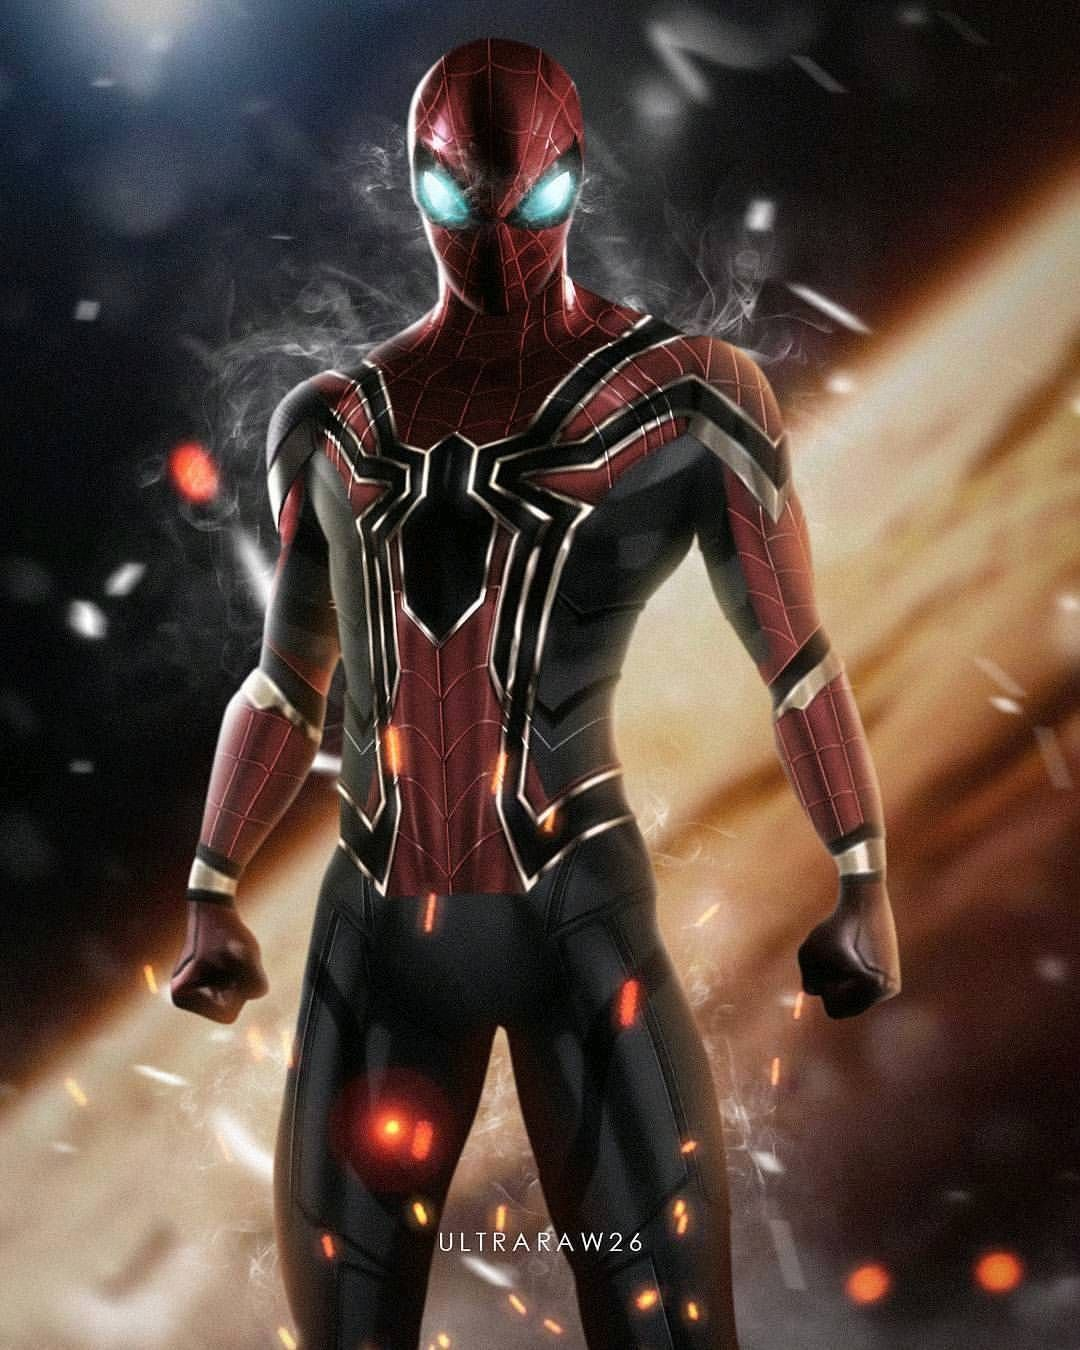 Pin By 규호 송 On Marvel Pinterest Marvel Spider Man And Spider